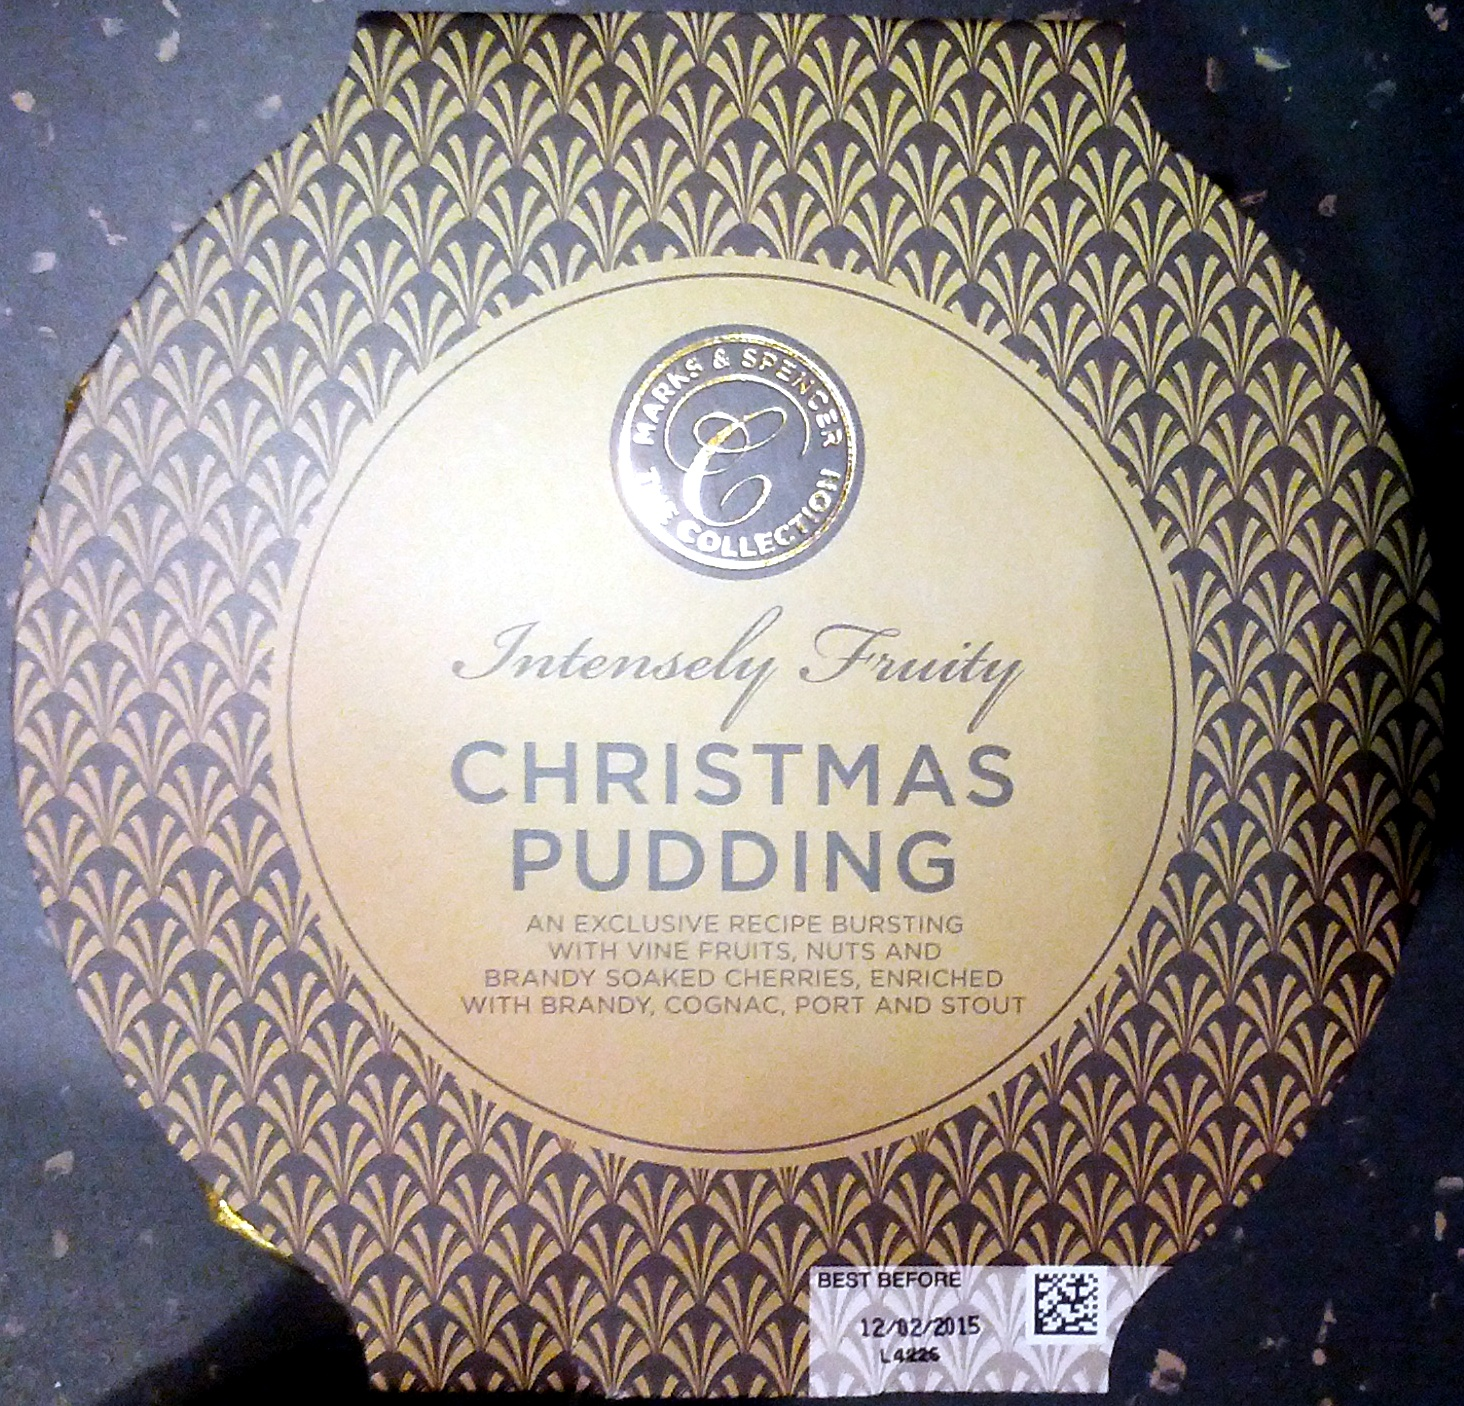 Intensely Fruity Christmas Pudding - Product